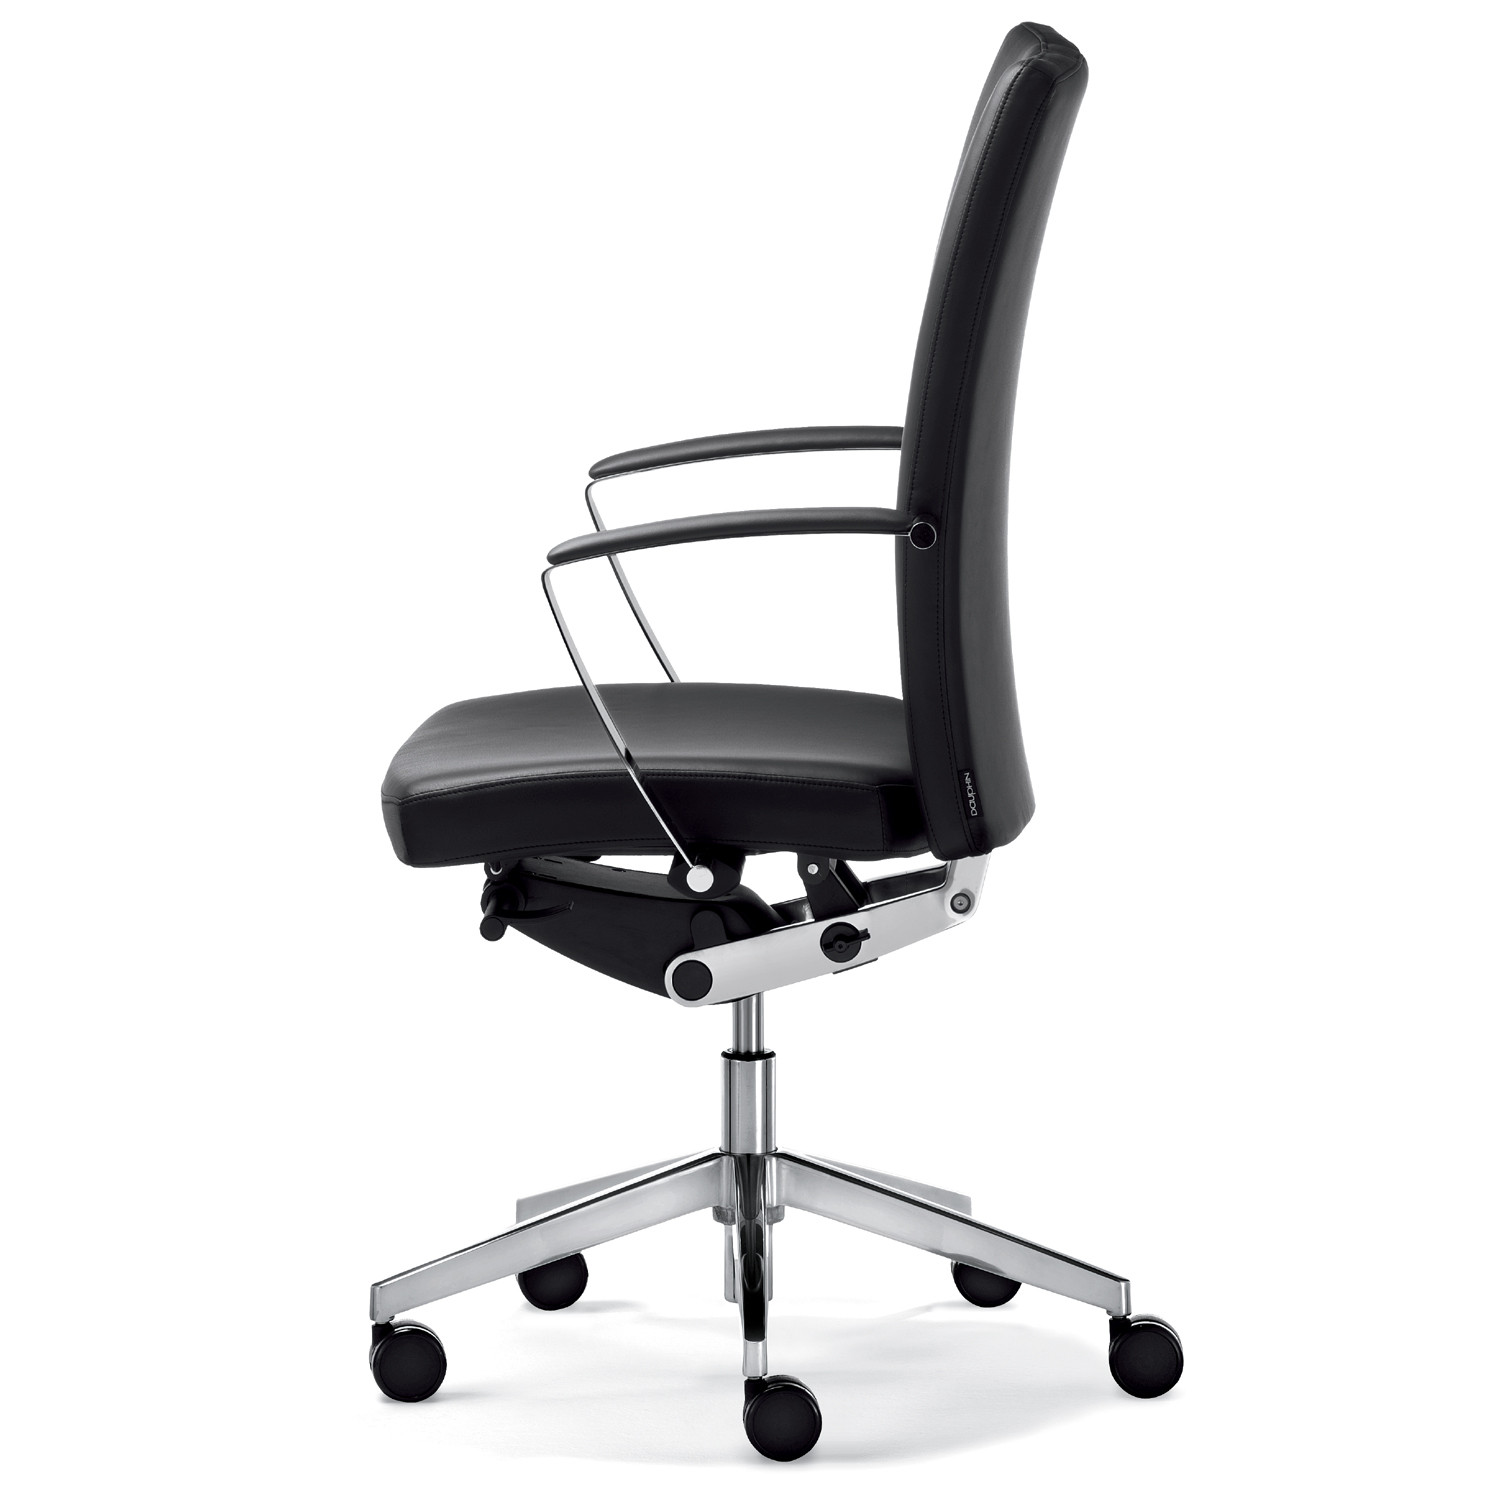 Fair Play Executive Leather Office Chair